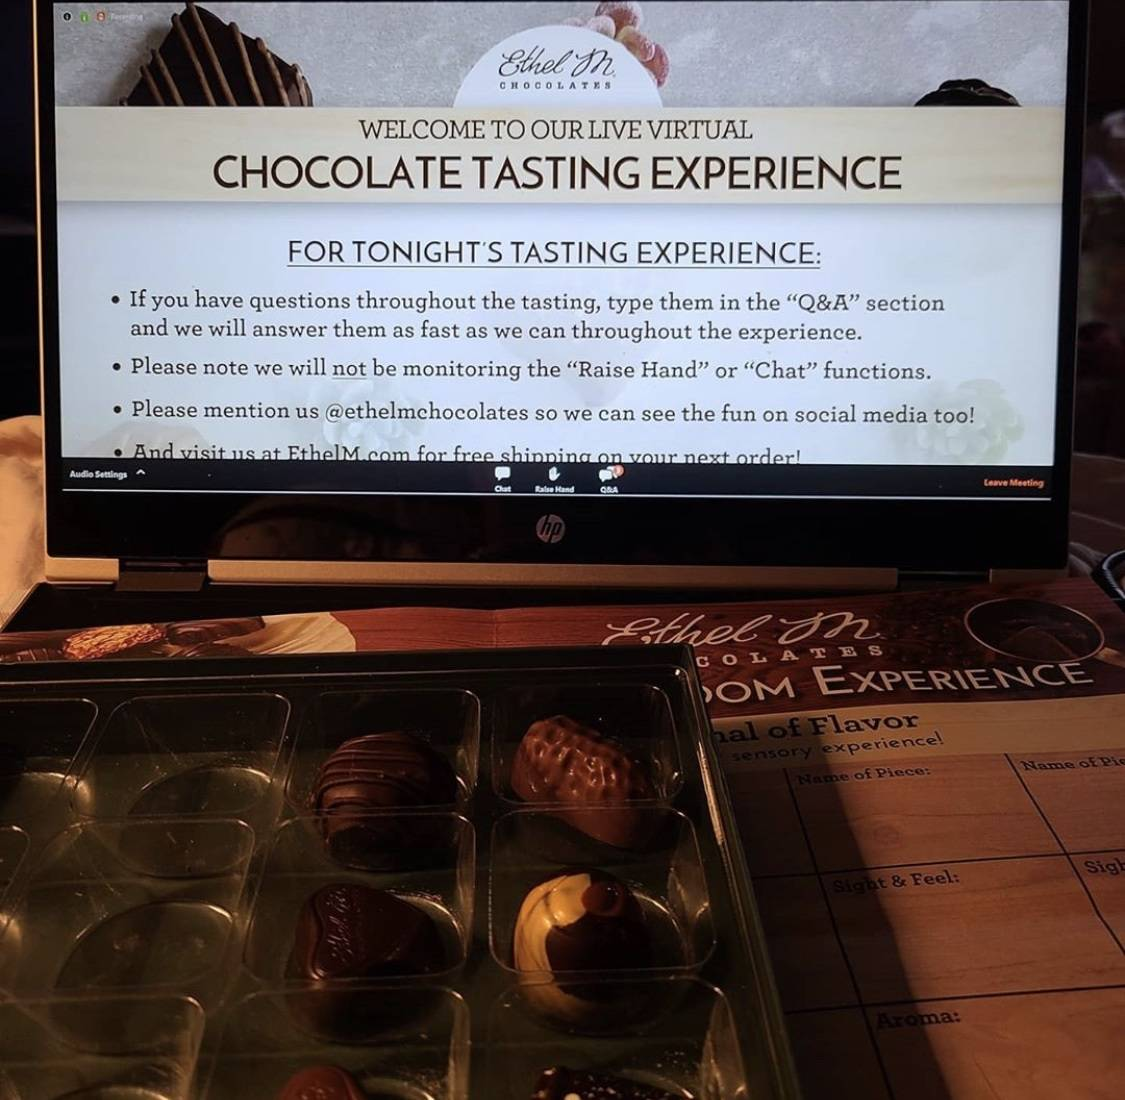 The virtual tastings are conducted on Zoom. (Ethel M Chocolates)